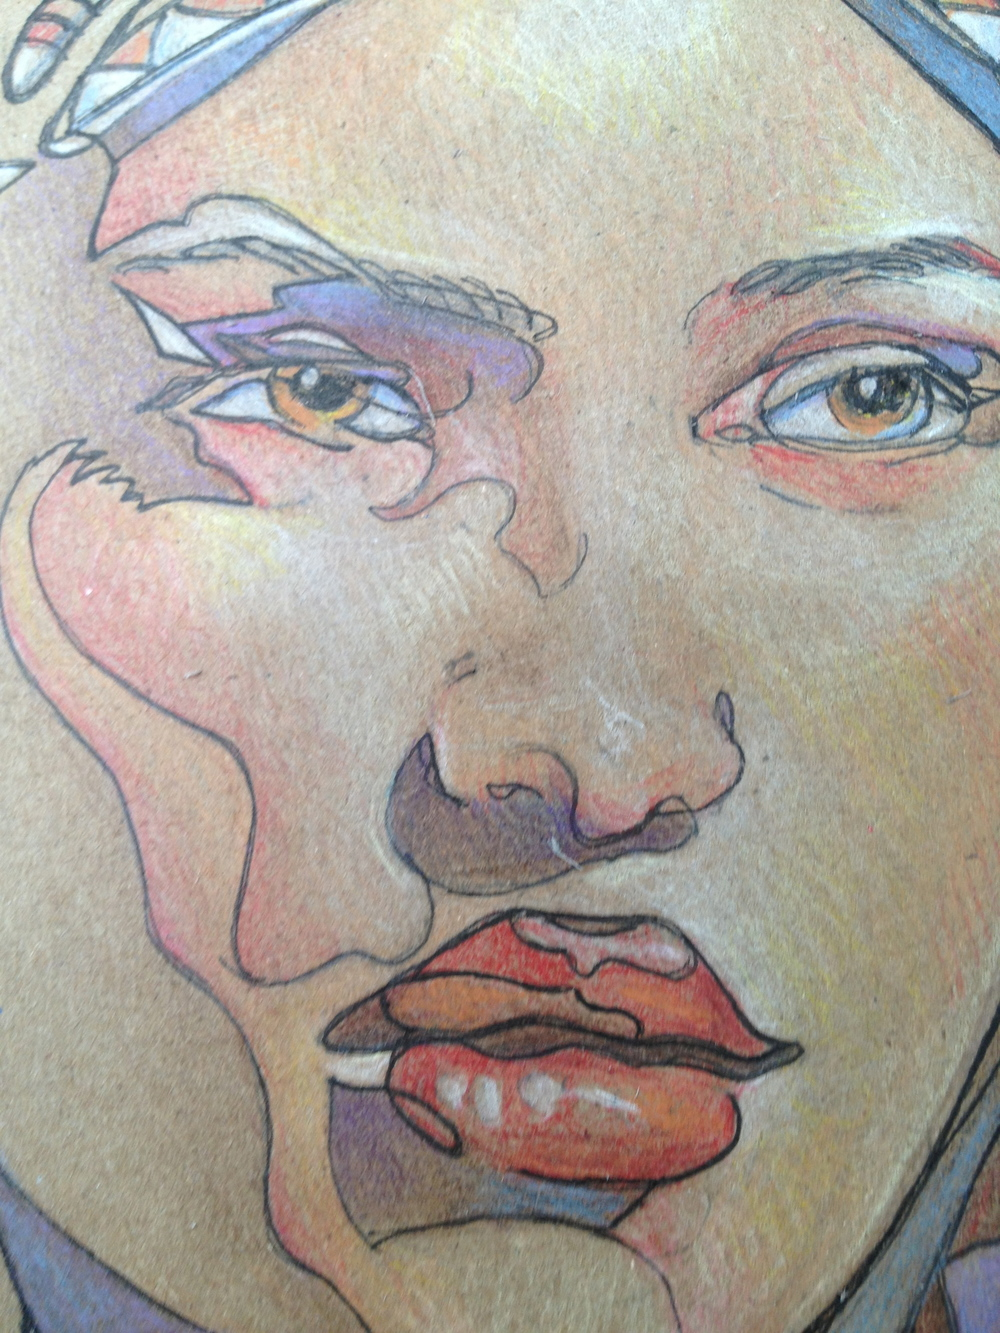 In this closeup you can see how the color pencil is built up. Use the direction of your pencil strokes to build up the shaping of your drawing. Burnish the colors to brighten them and make them pop.